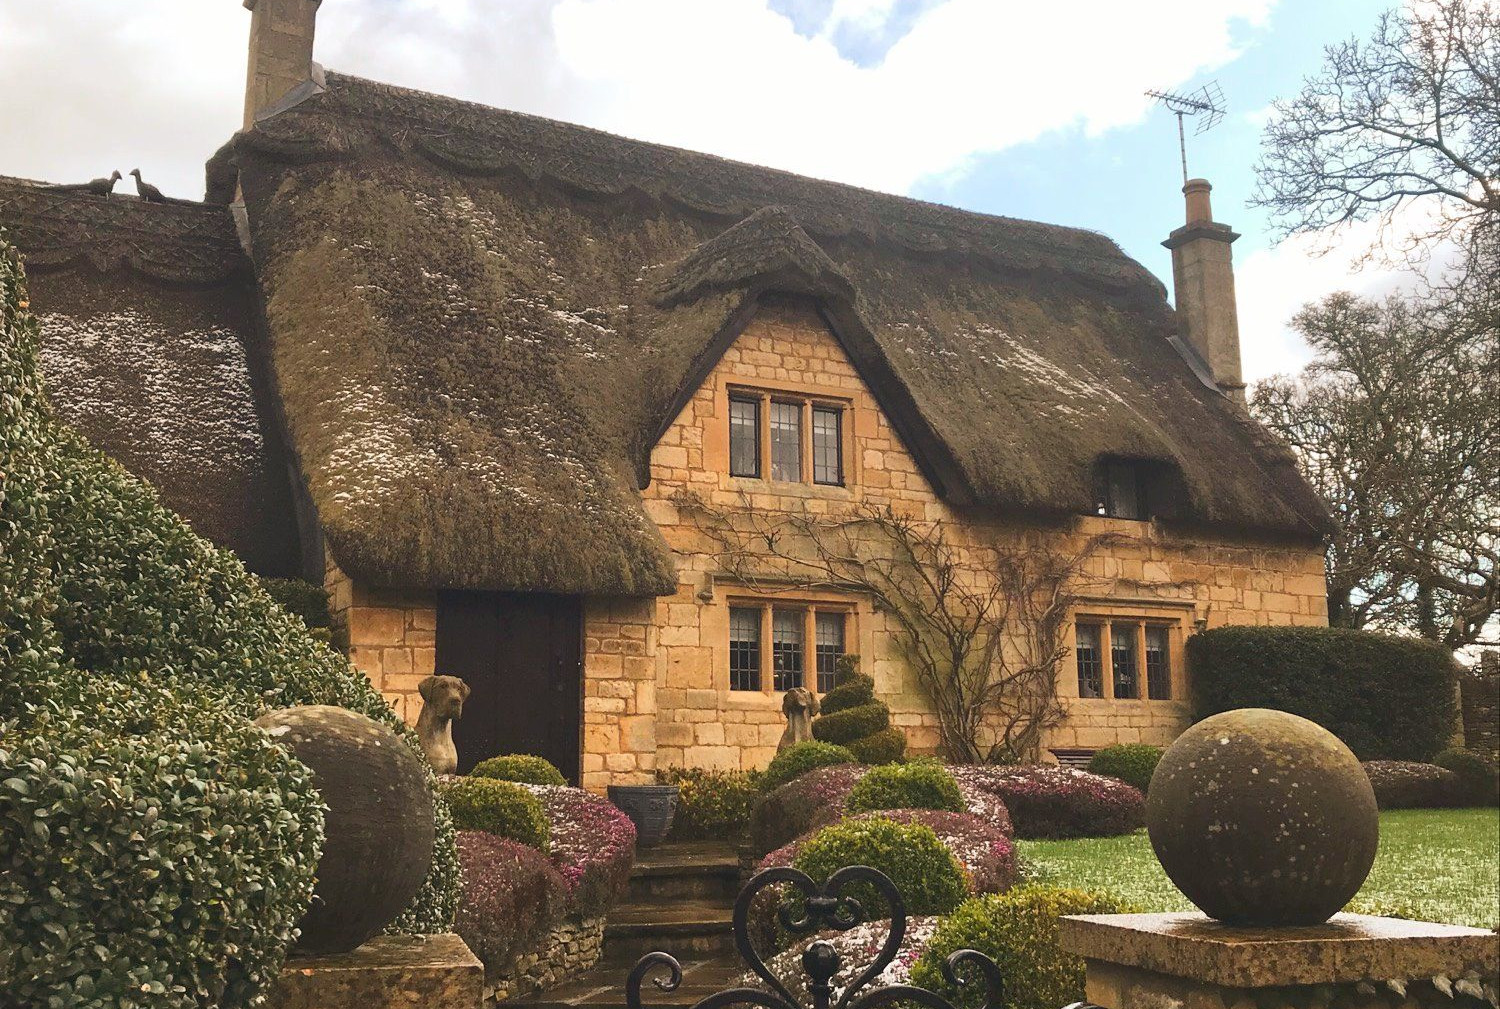 Thatched Cottages - Chipping Campden